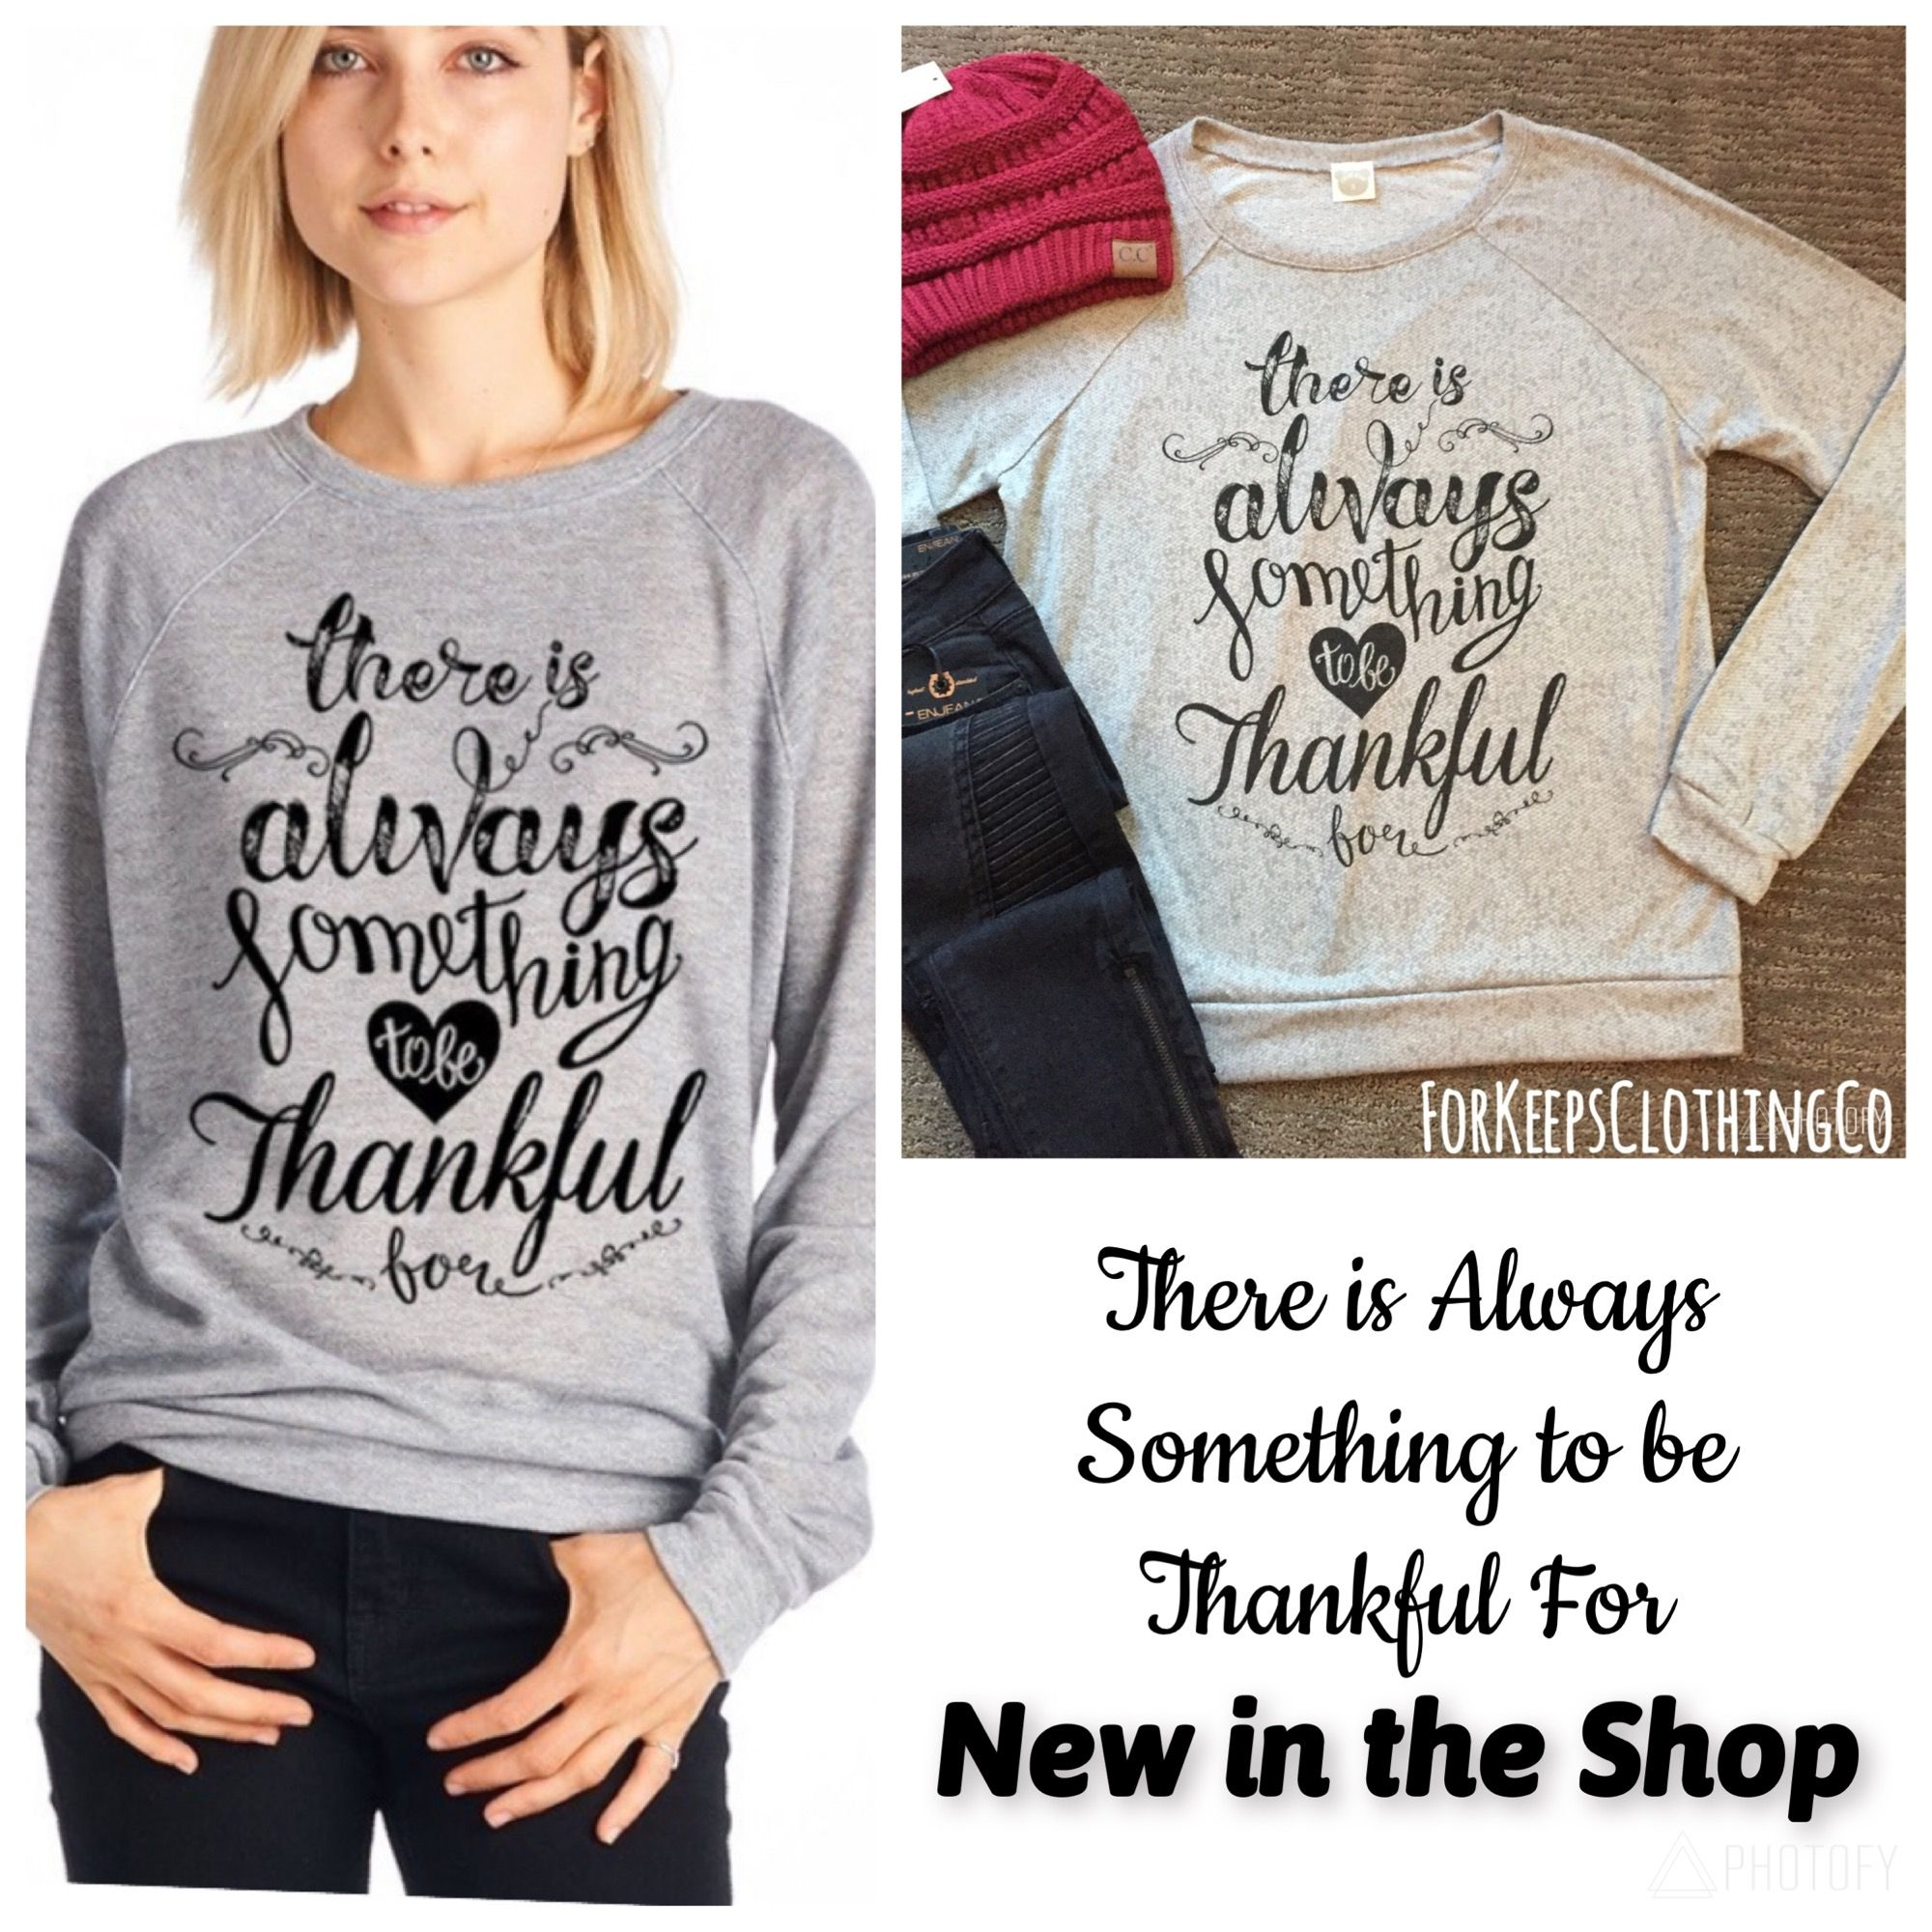 This is SOOO SOFT and SOOO COZY!! And perfect for the upcoming holidays, or just any casual day. THERE IS ALWAYS SOMETHING TO BE THANKFUL FOR!!!    Size Small fits 0-4    Size Medium fits 4-8    Size Large fits 8-12... just dependent on how loose and comfy you want it. Super cute cut though!!    $43 with FREE SHIPPING in the 🇺🇸     International rates will apply. | Shop this product here: http://spreesy.com/Forkeepsclothingco/279 | Shop all of our products at…